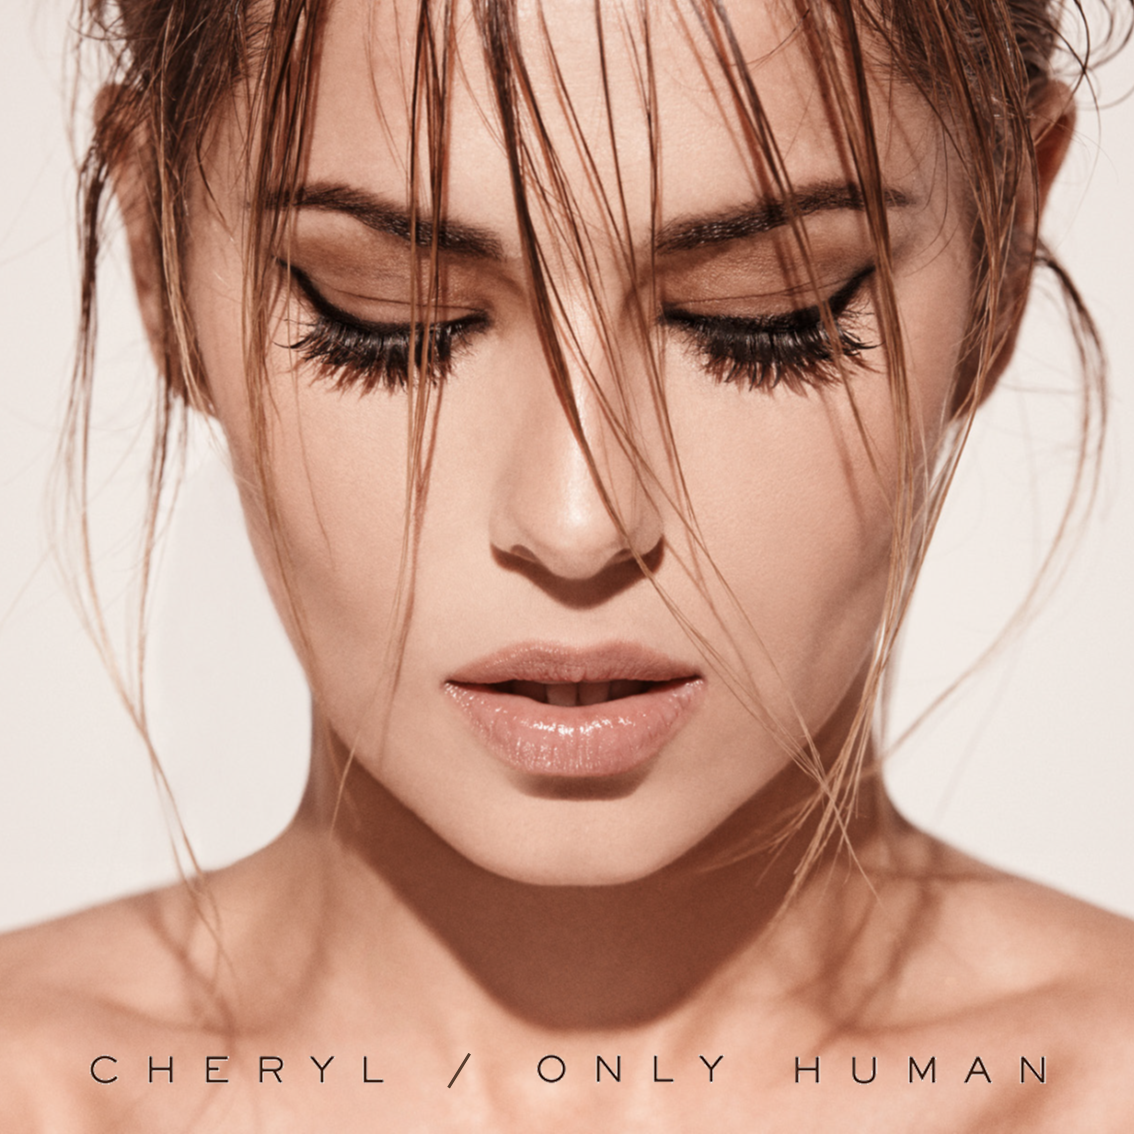 Ivy Levan Nude Awesome cheryl cole - only human (deluxe album preview)   cheryl